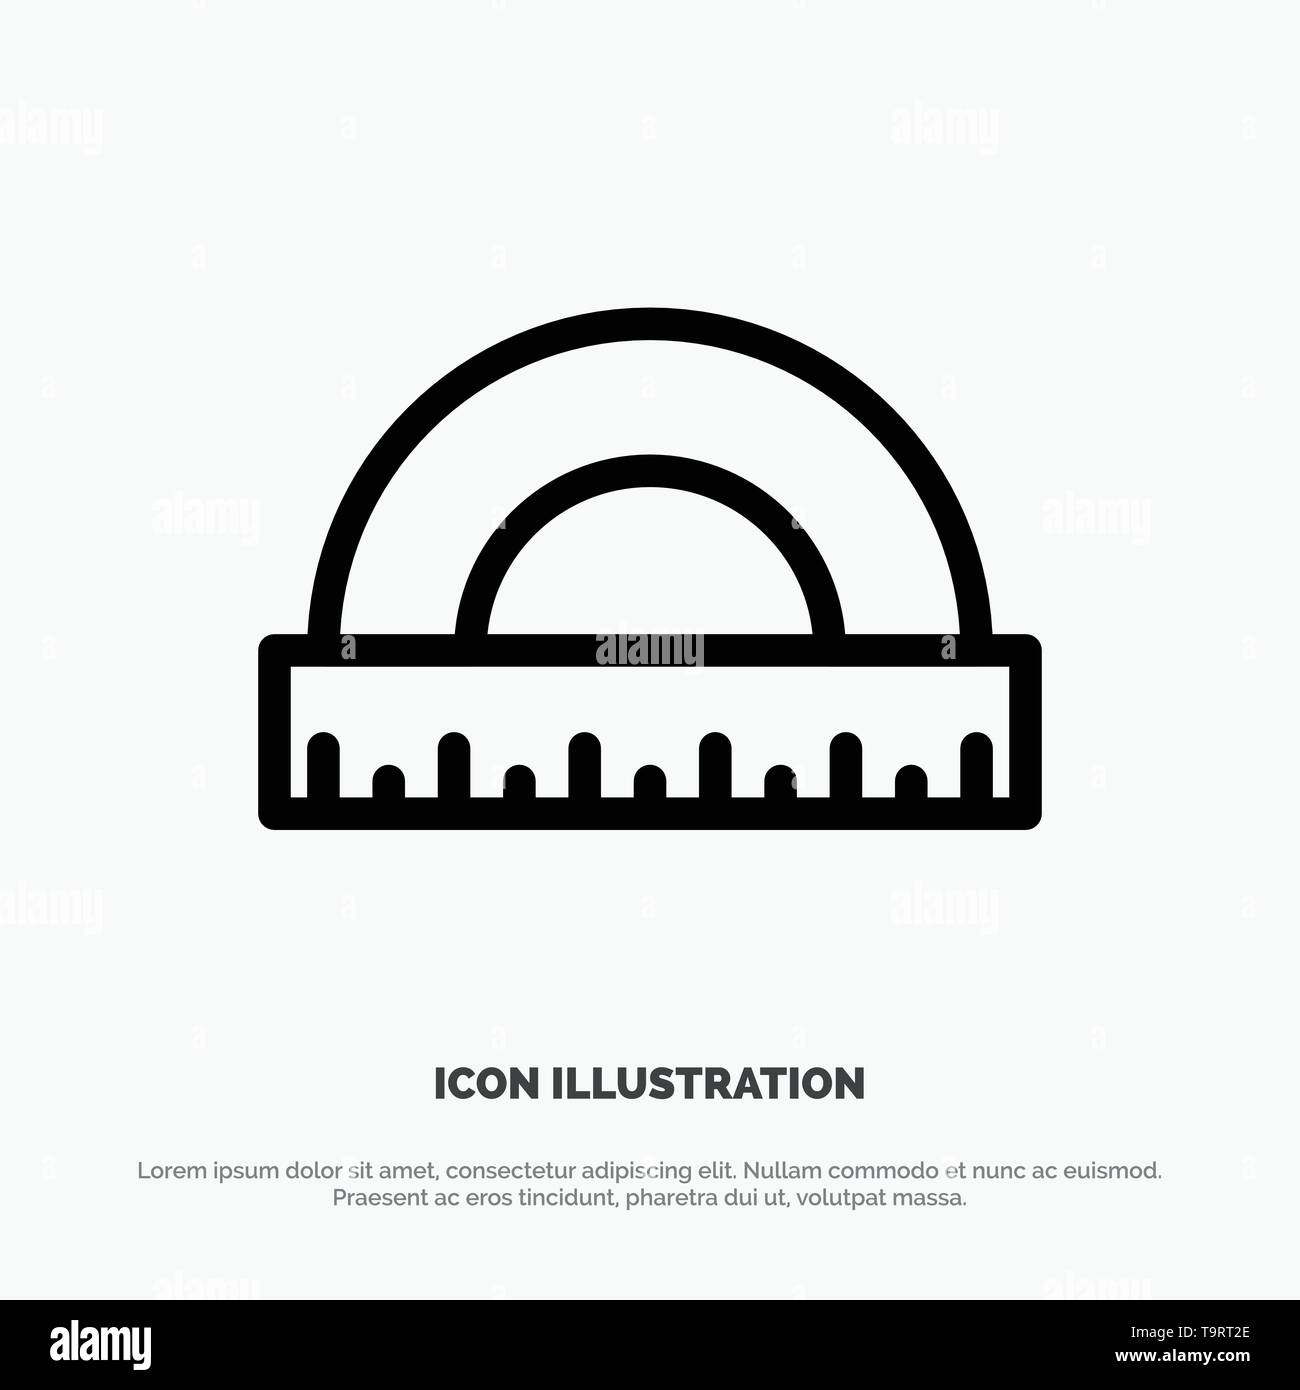 Angle, Construction, Measure, Ruler, Scale Line Icon Vector - Stock Image